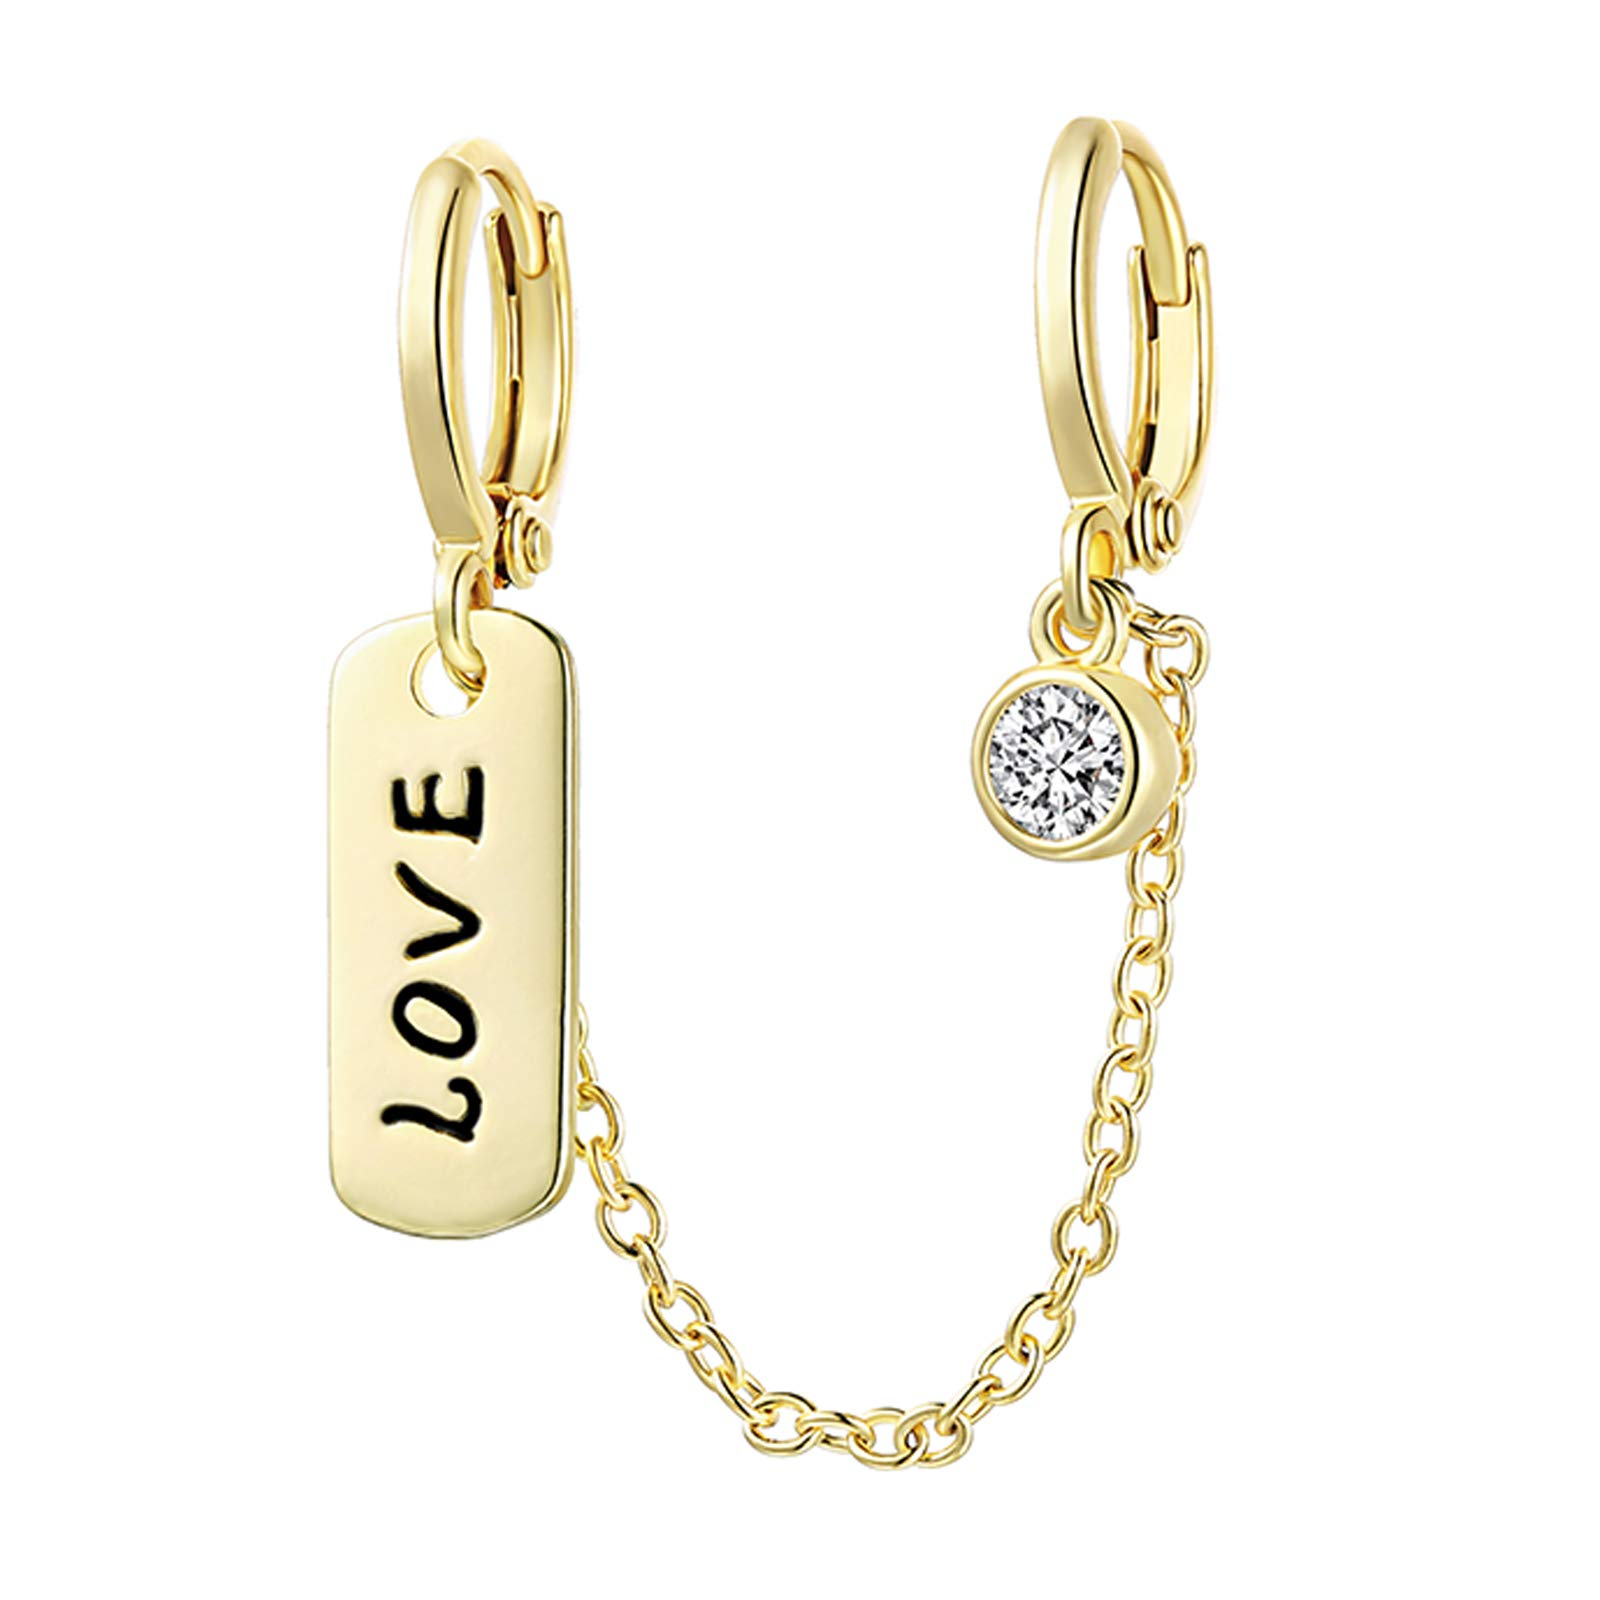 LAZLUVU 1pcs Double Hoop Earrings for Women Girls LOVE Pendant 18K Gold/White Gold Plated Dainty Chained Huggies Fashion Double Piercing Earrings Jewelry Gift